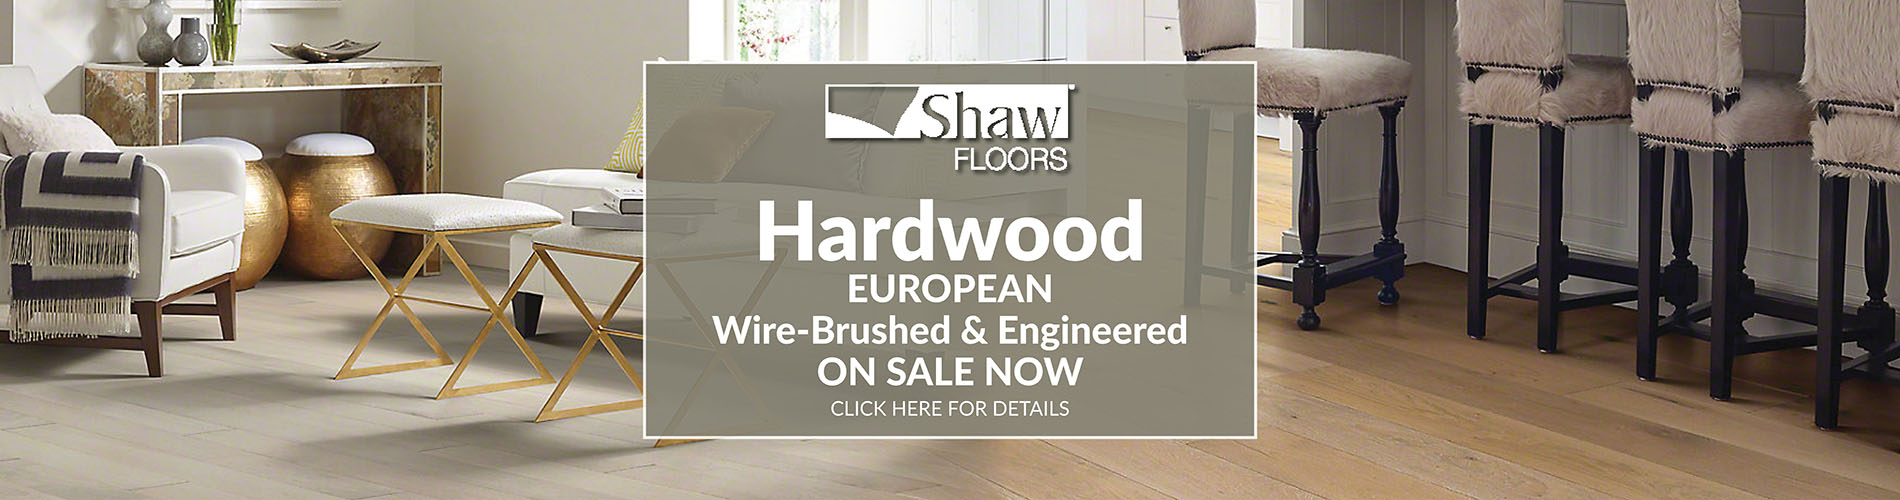 Shaw european hardwood flooring on sale at  Fine Floorz. Wire-brushed and engineered on sale now.